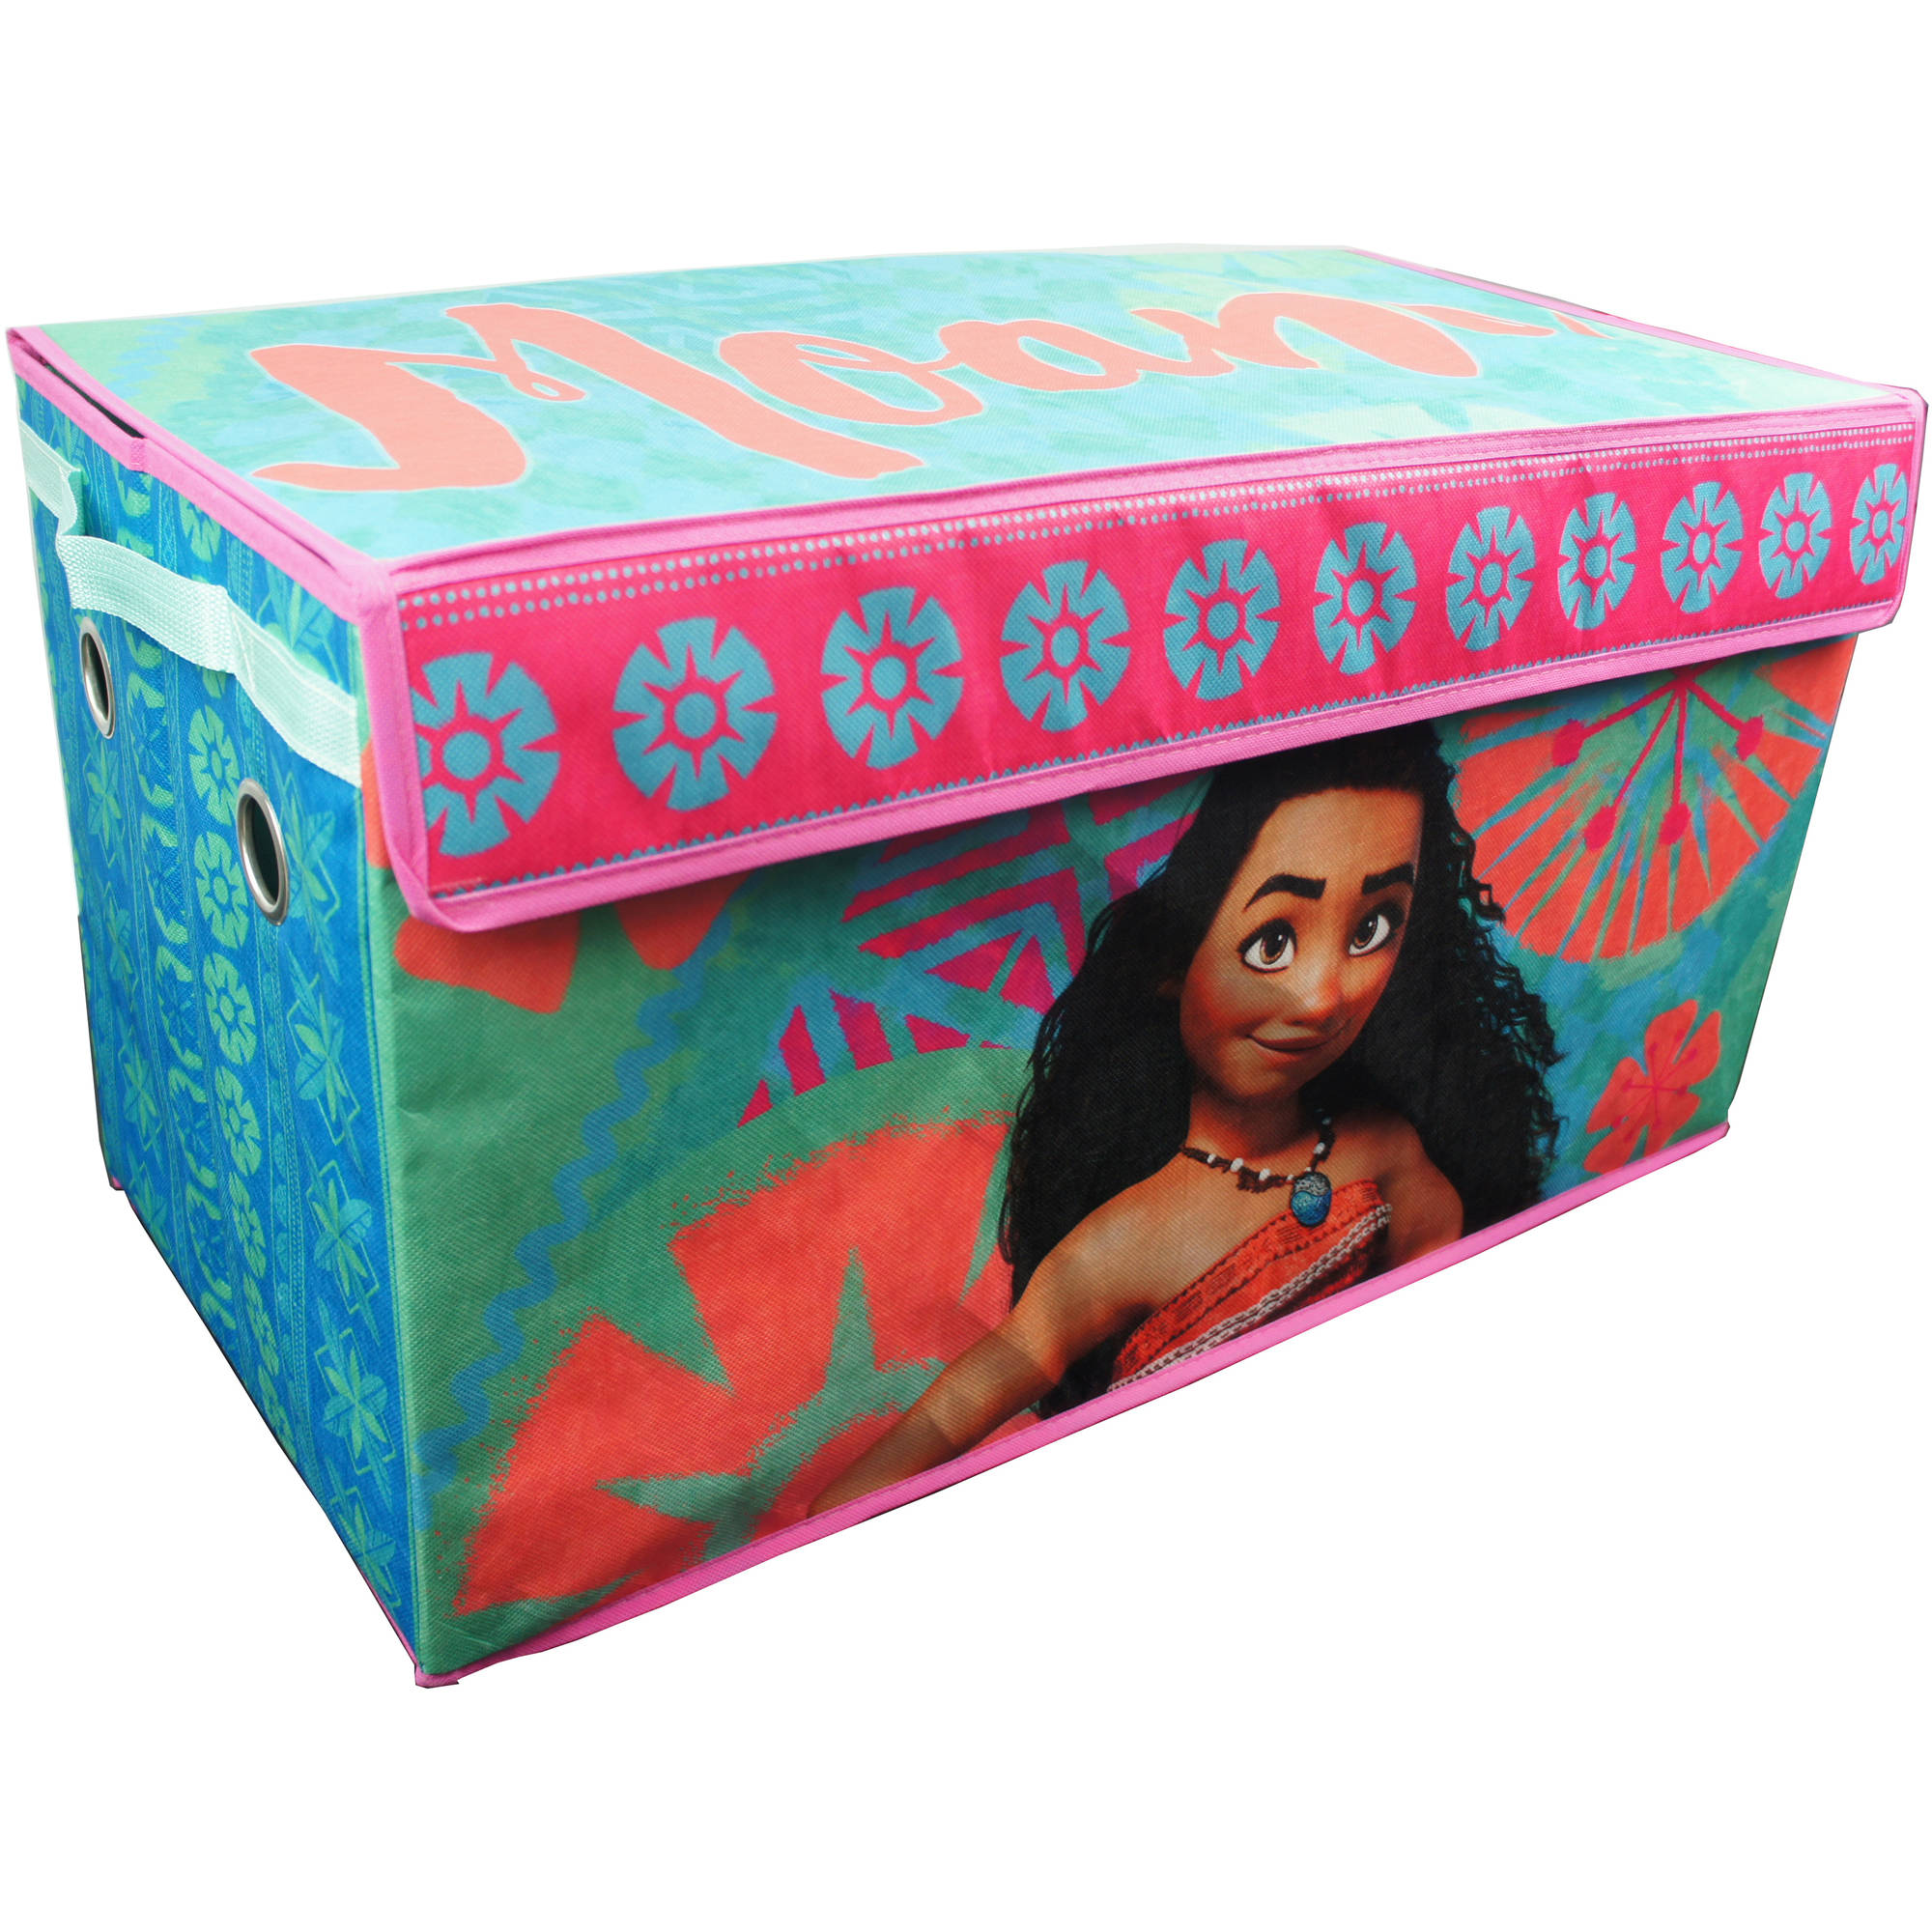 Disney Moana Oversized Collapsible Storage Play Trunk